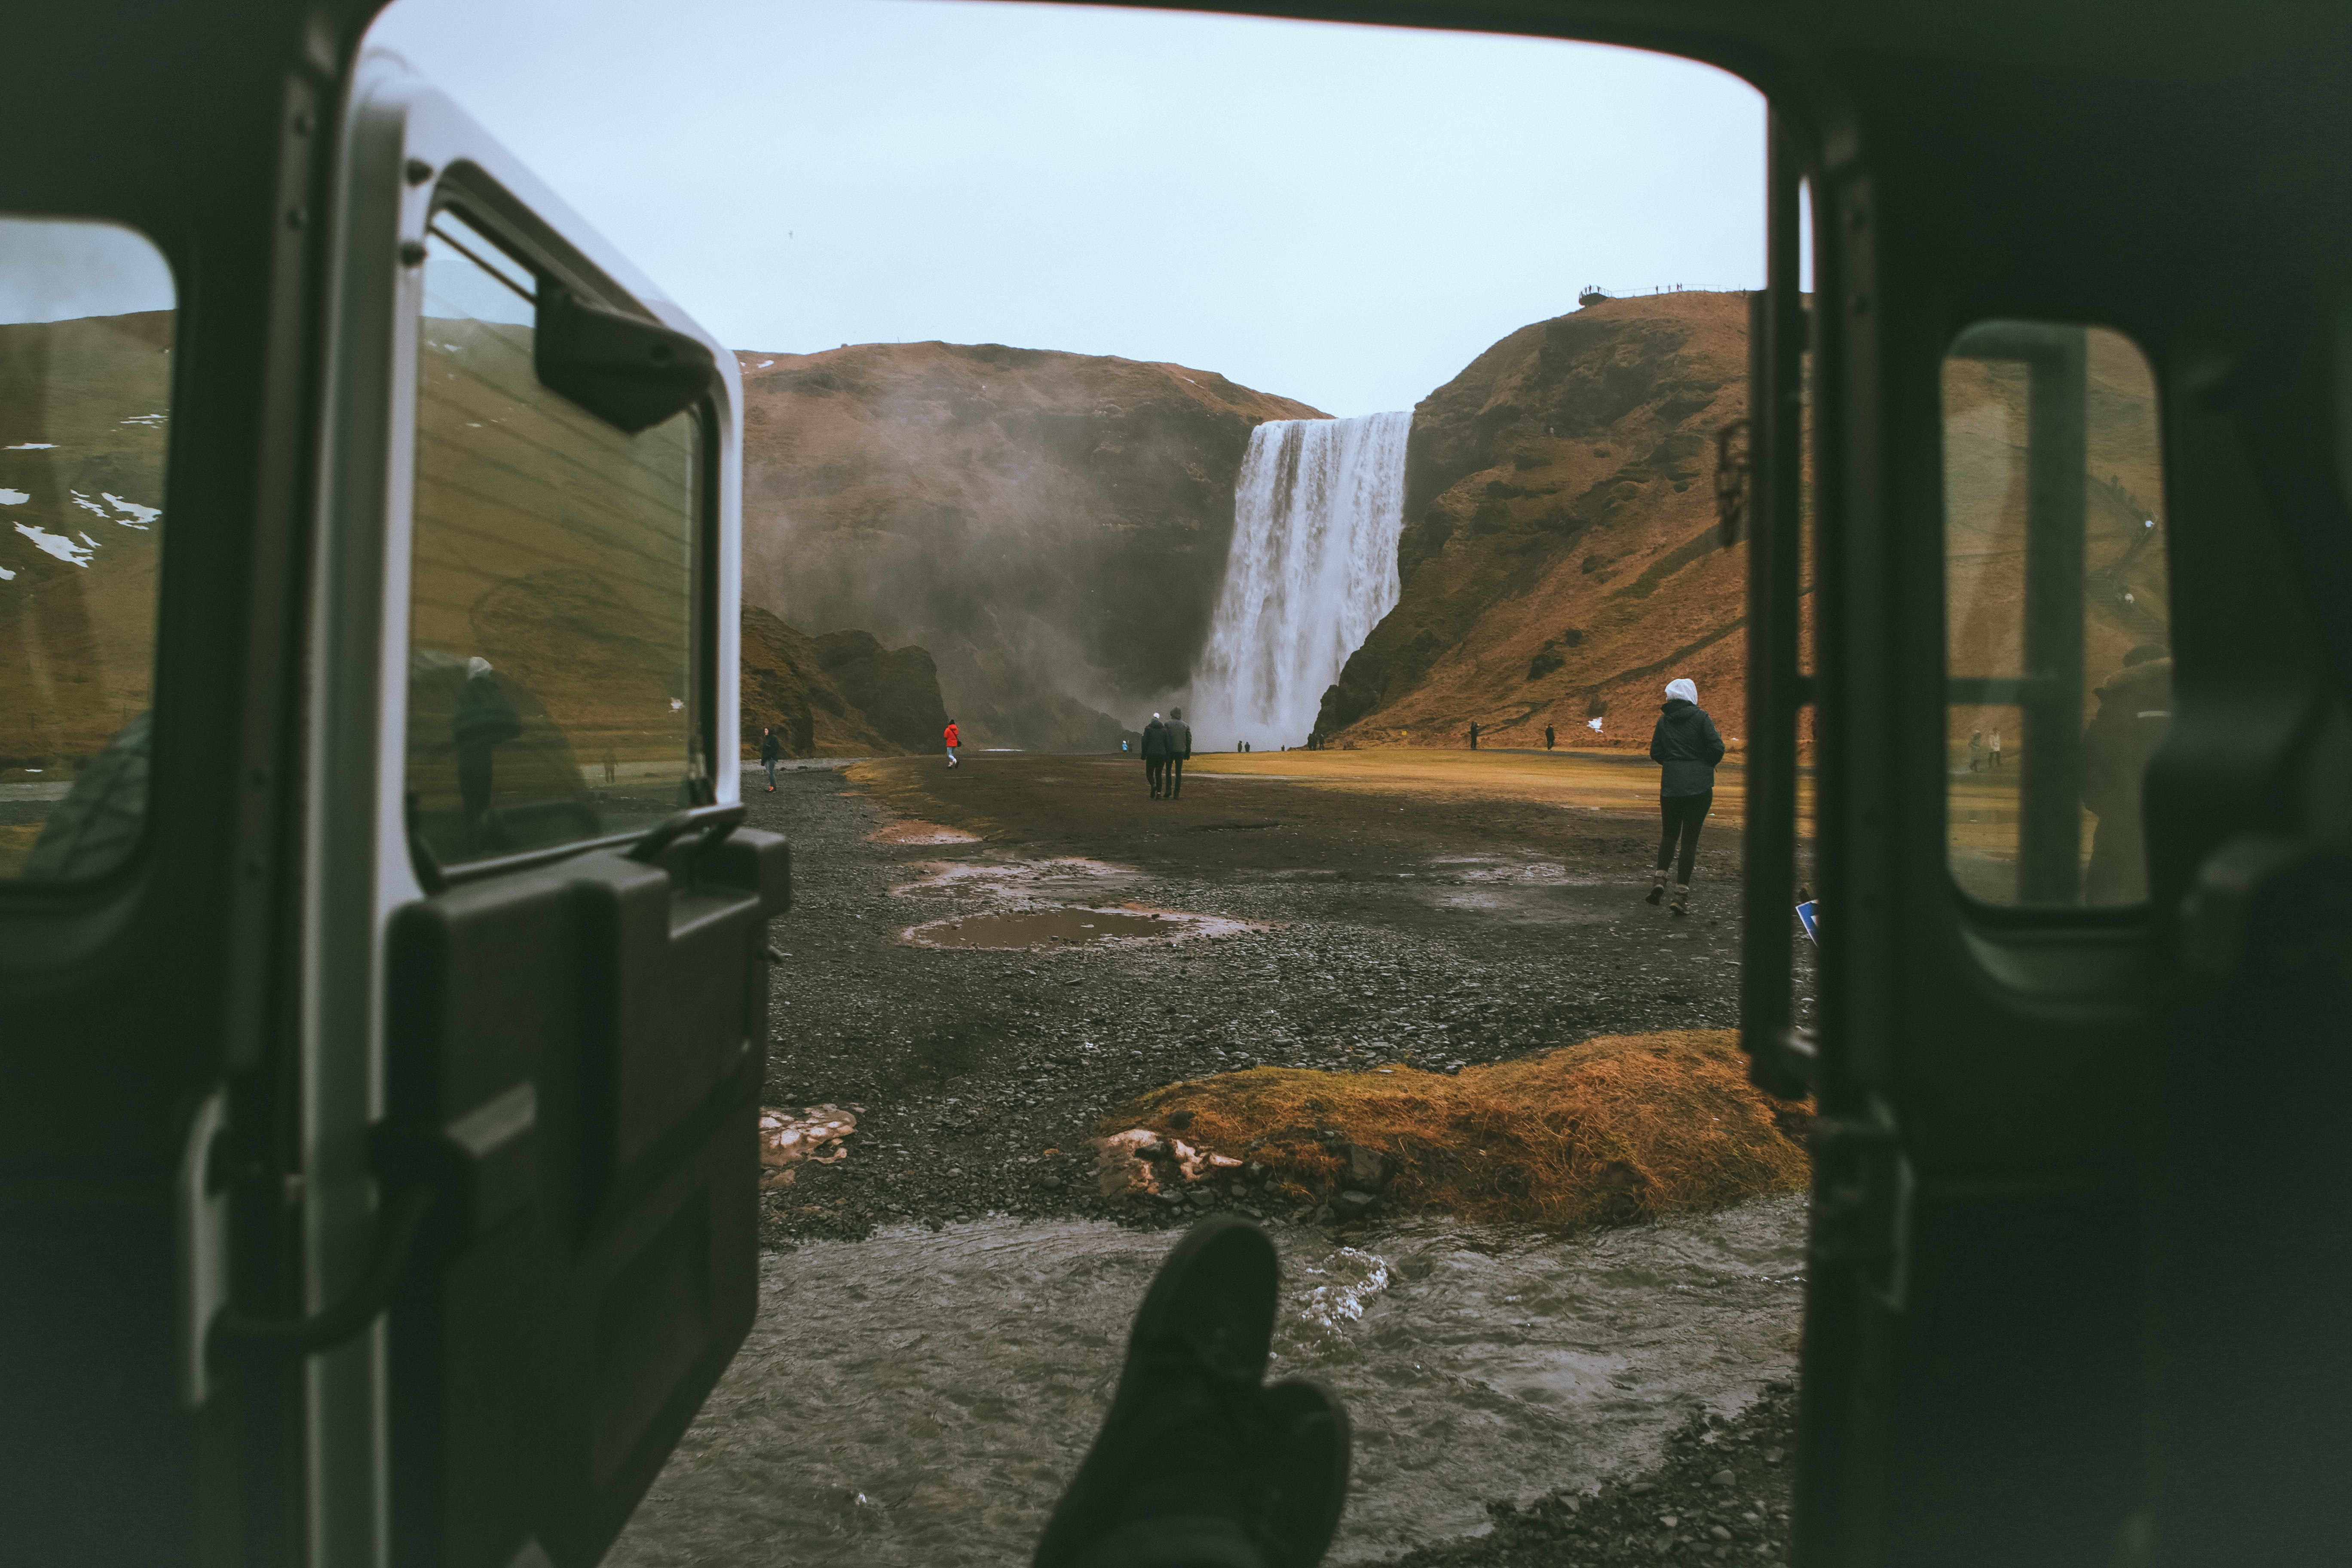 View of a waterfall from an open car door.